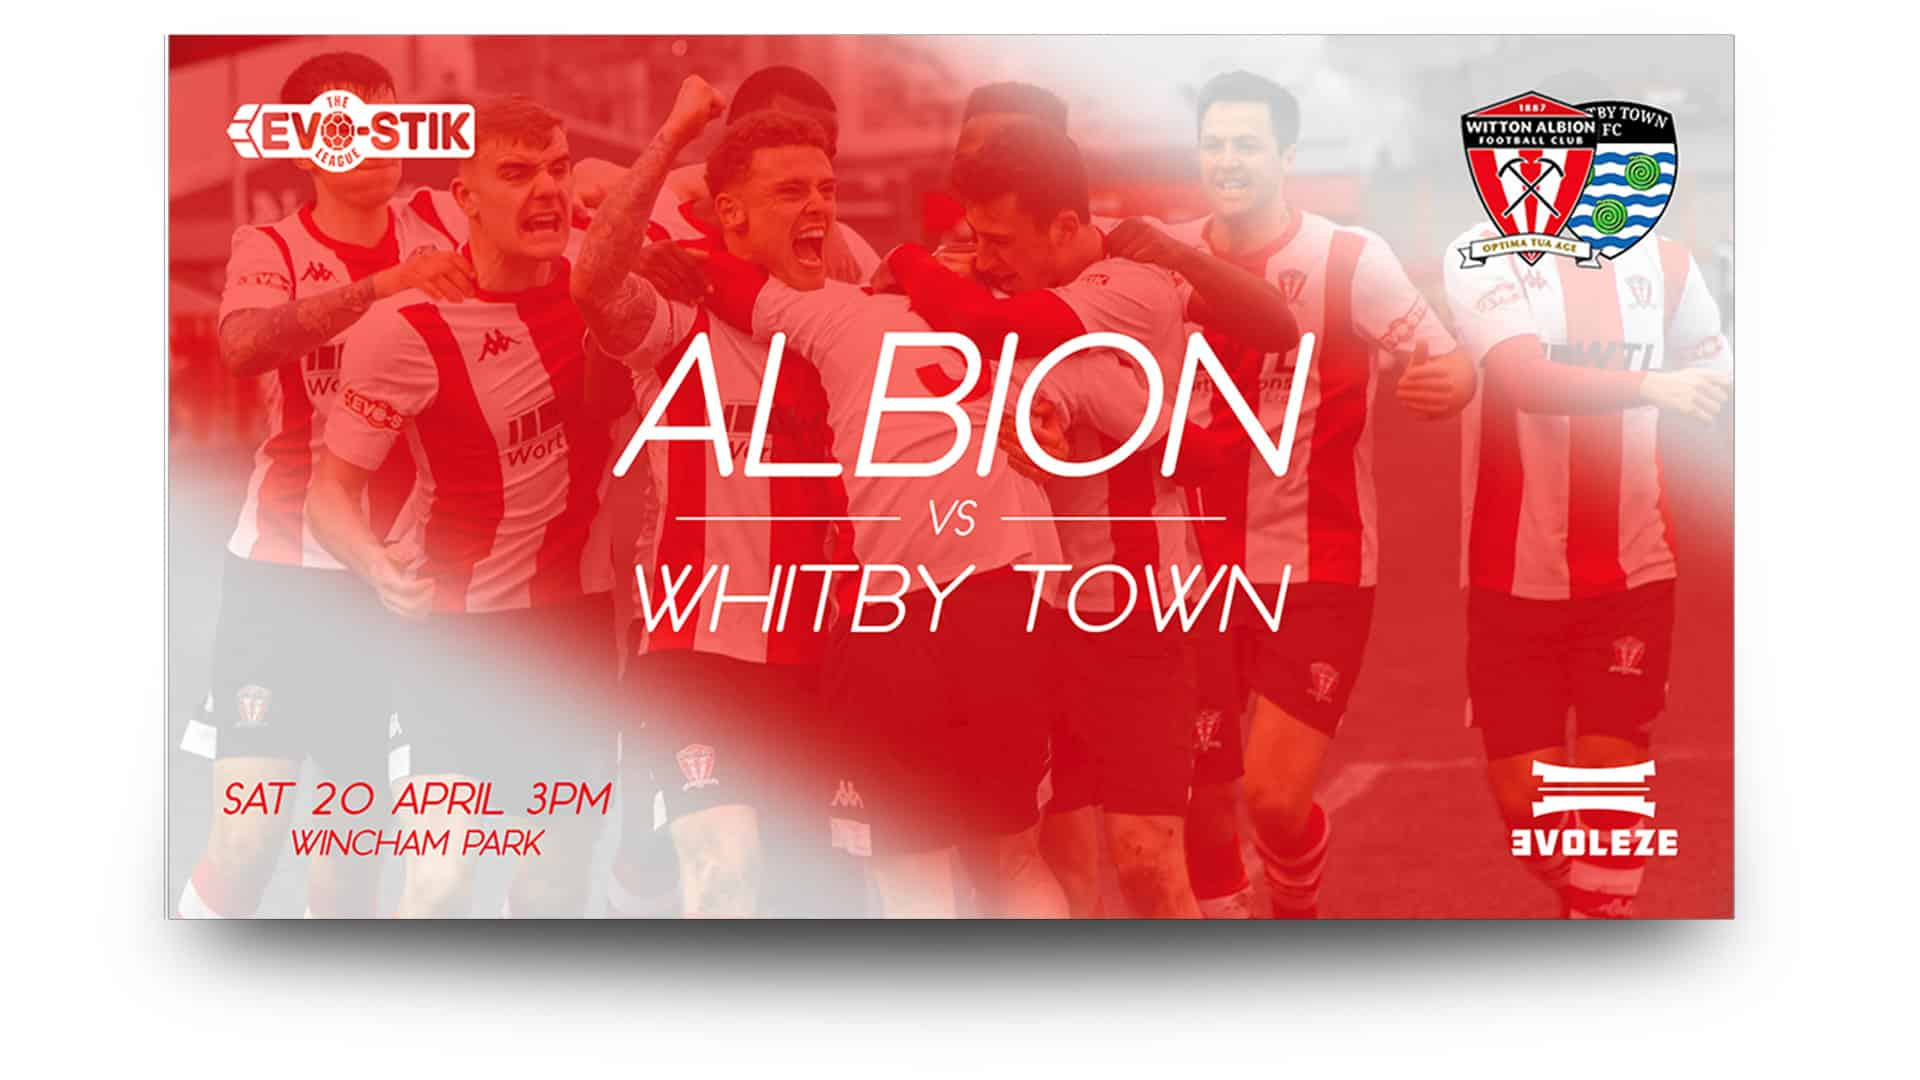 witton albion matchday graphics set